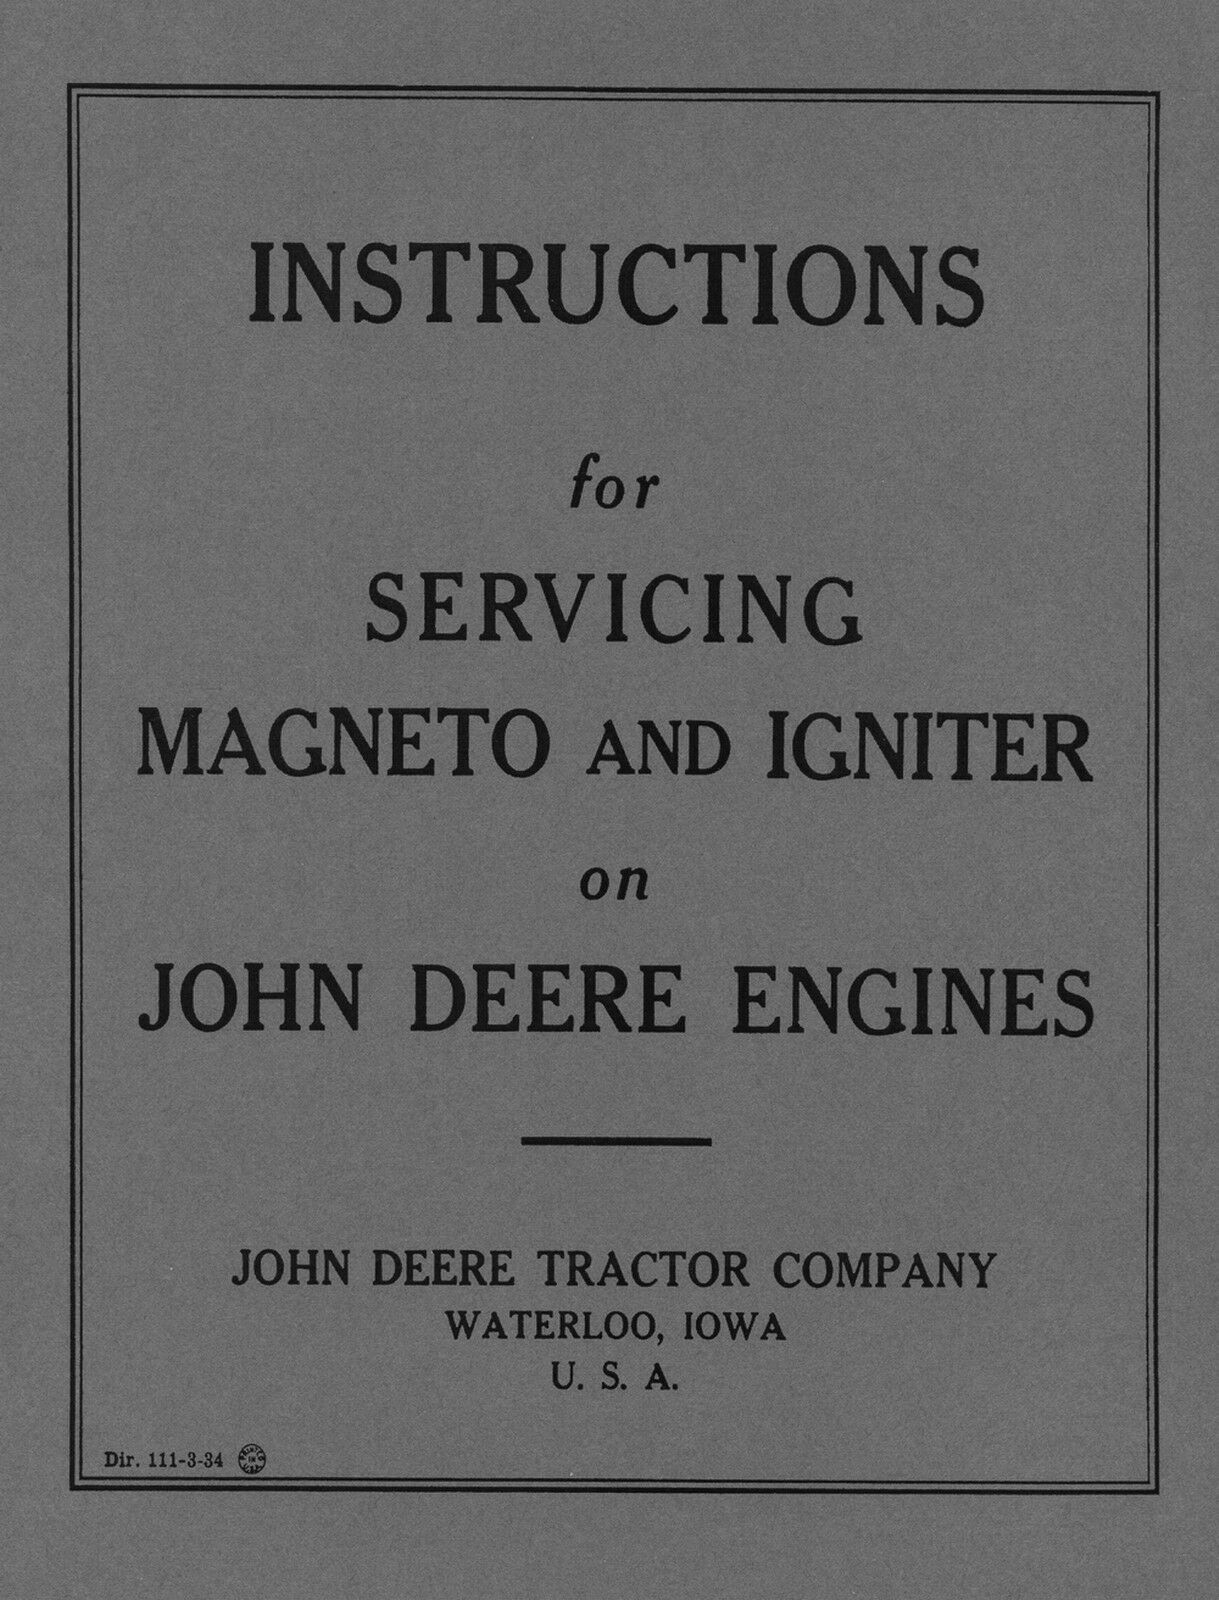 John Deere Magneto And Igniter Service Instructions 899 Picclick Wico Wiring Schematic 1 Of 1free Shipping